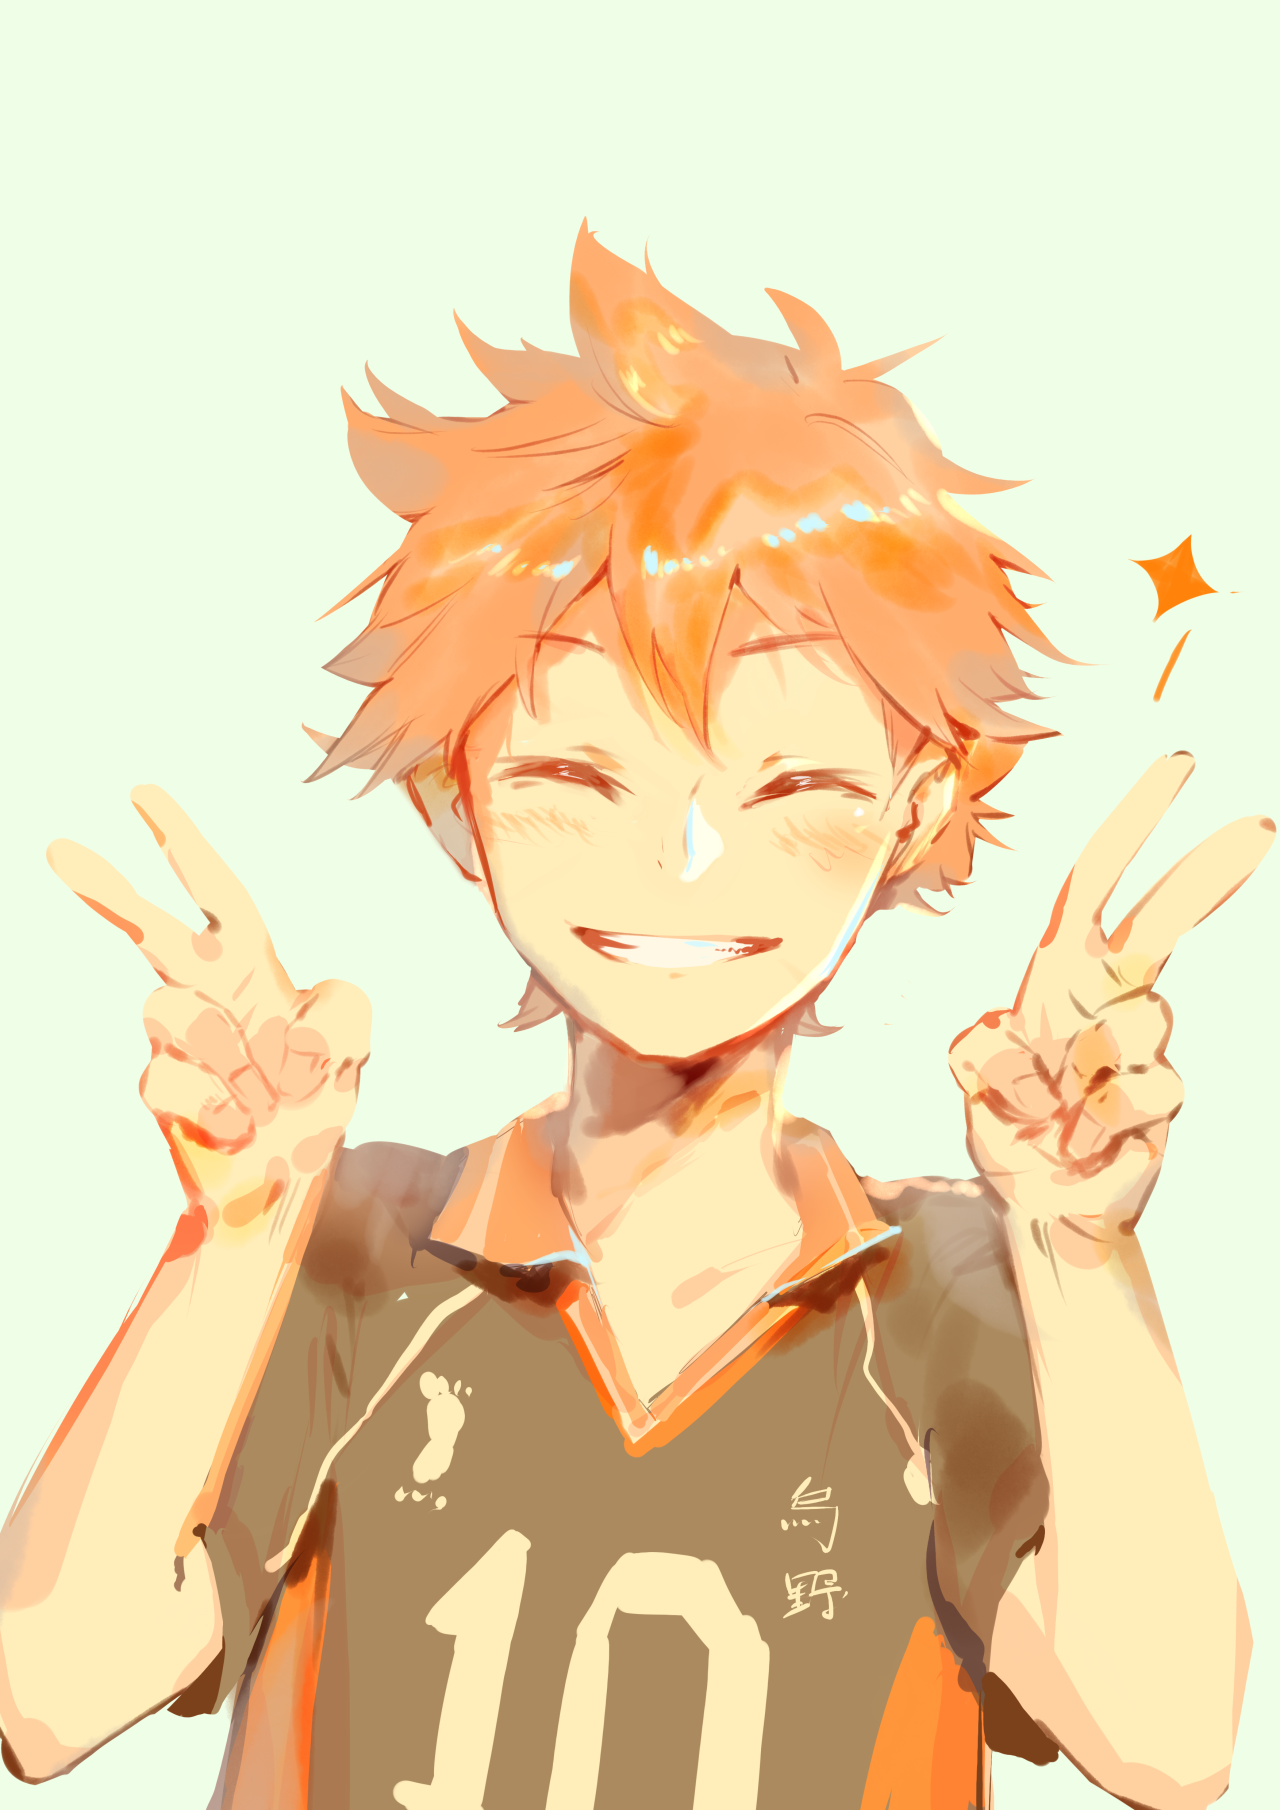 Pin by Vanesa Abarca on Haikyuu!! Pinterest Sun